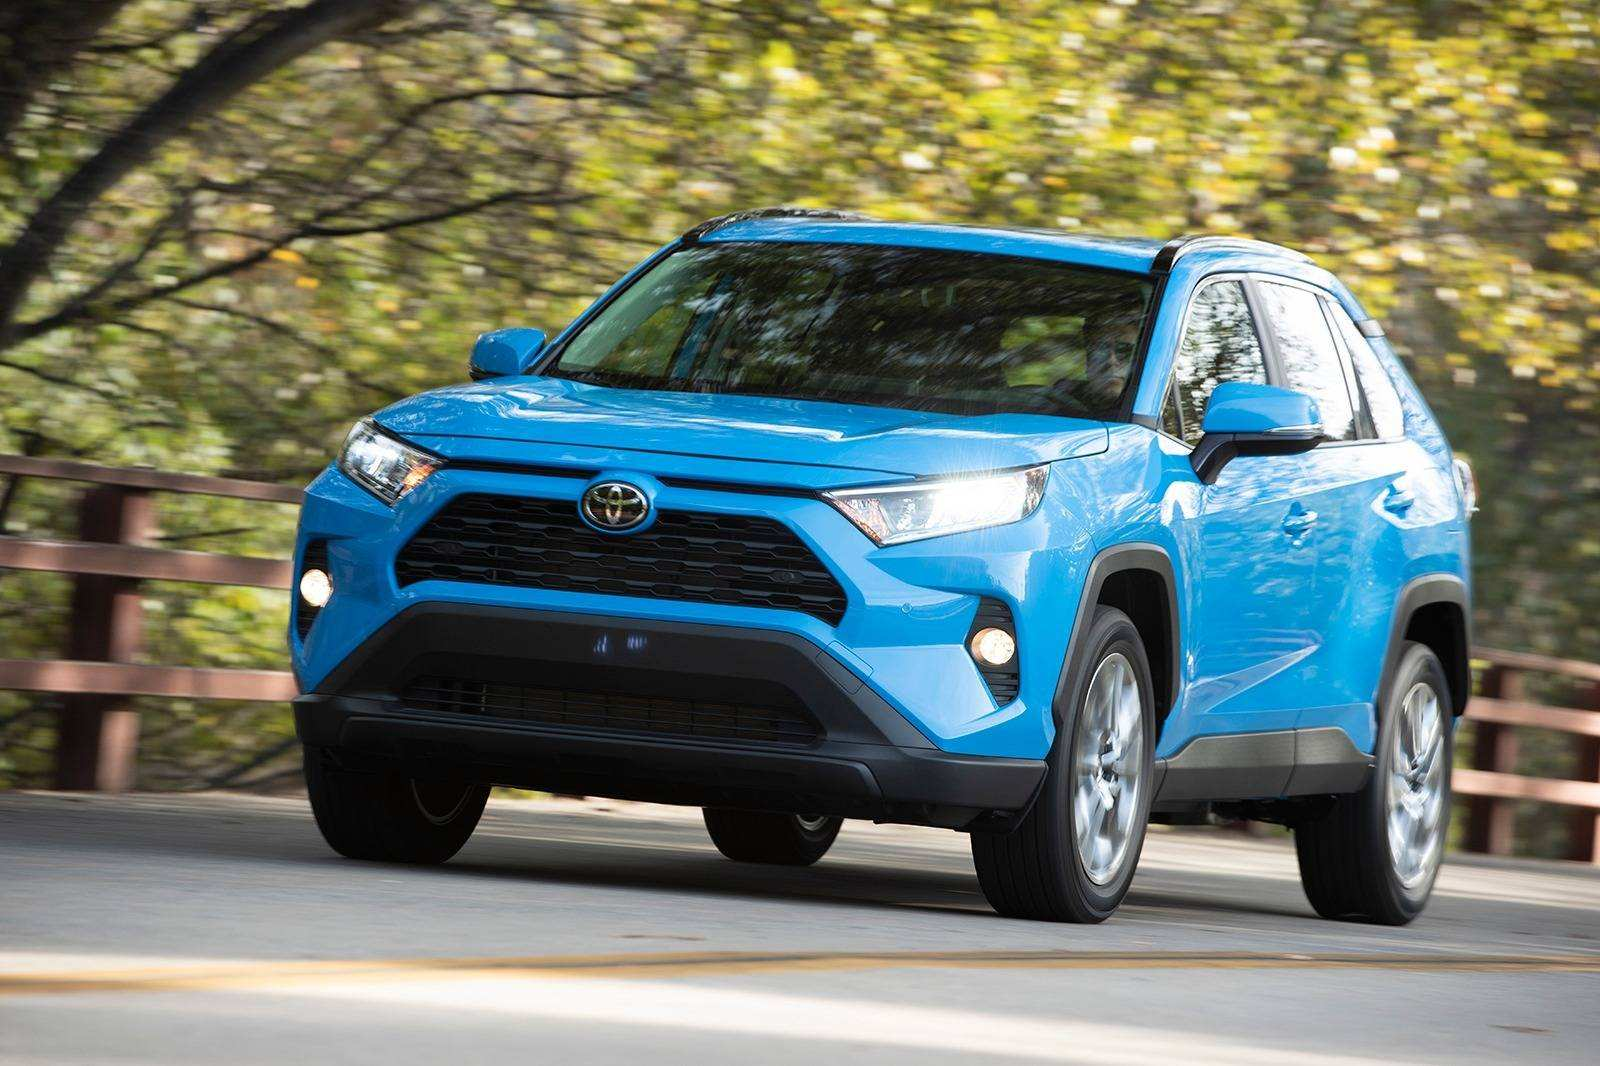 66 All New Best Toyota 2019 Le Specs And Review Rumors by Best Toyota 2019 Le Specs And Review